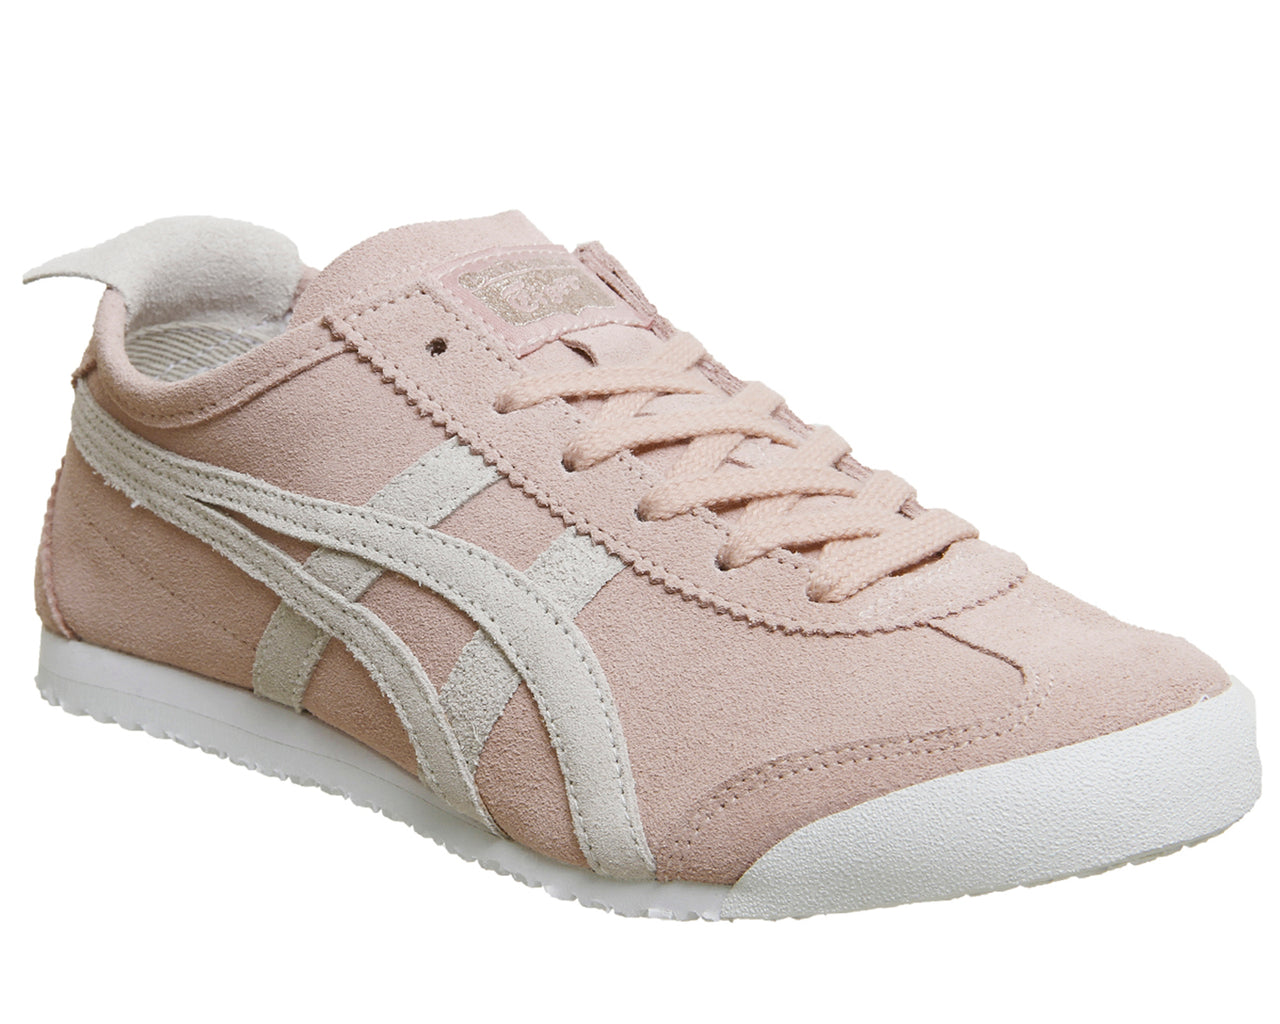 reputable site b45a5 33ab9 Womens Onitsuka Tiger Mexico 66 Trainers Pink Grey Suede